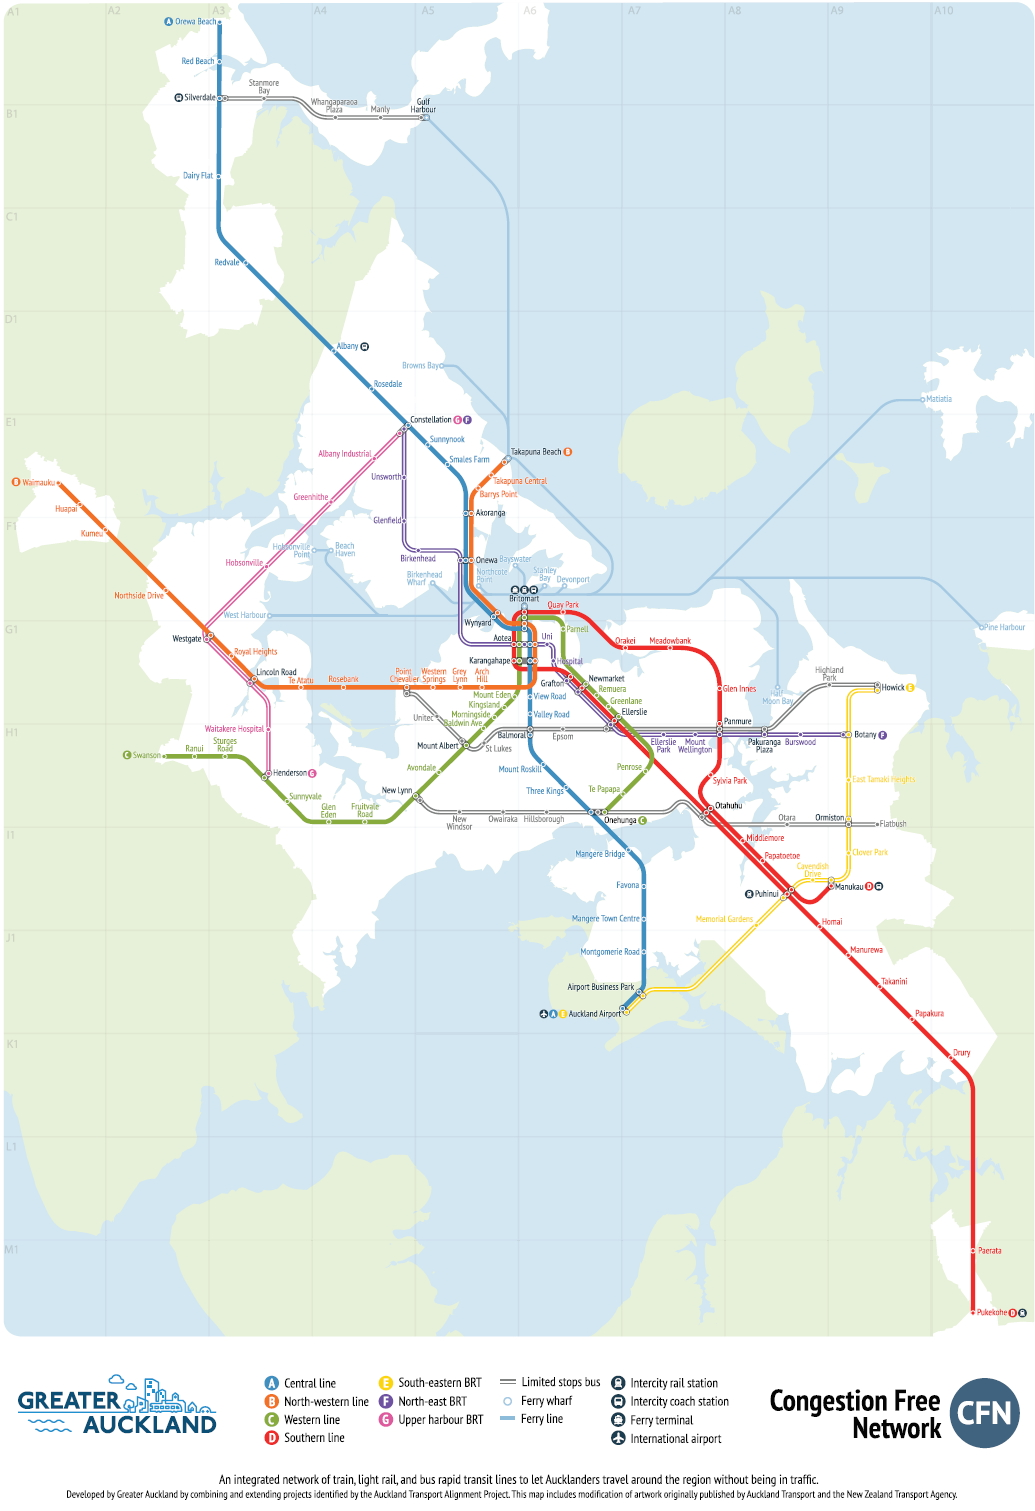 The Congestion Free Network 2